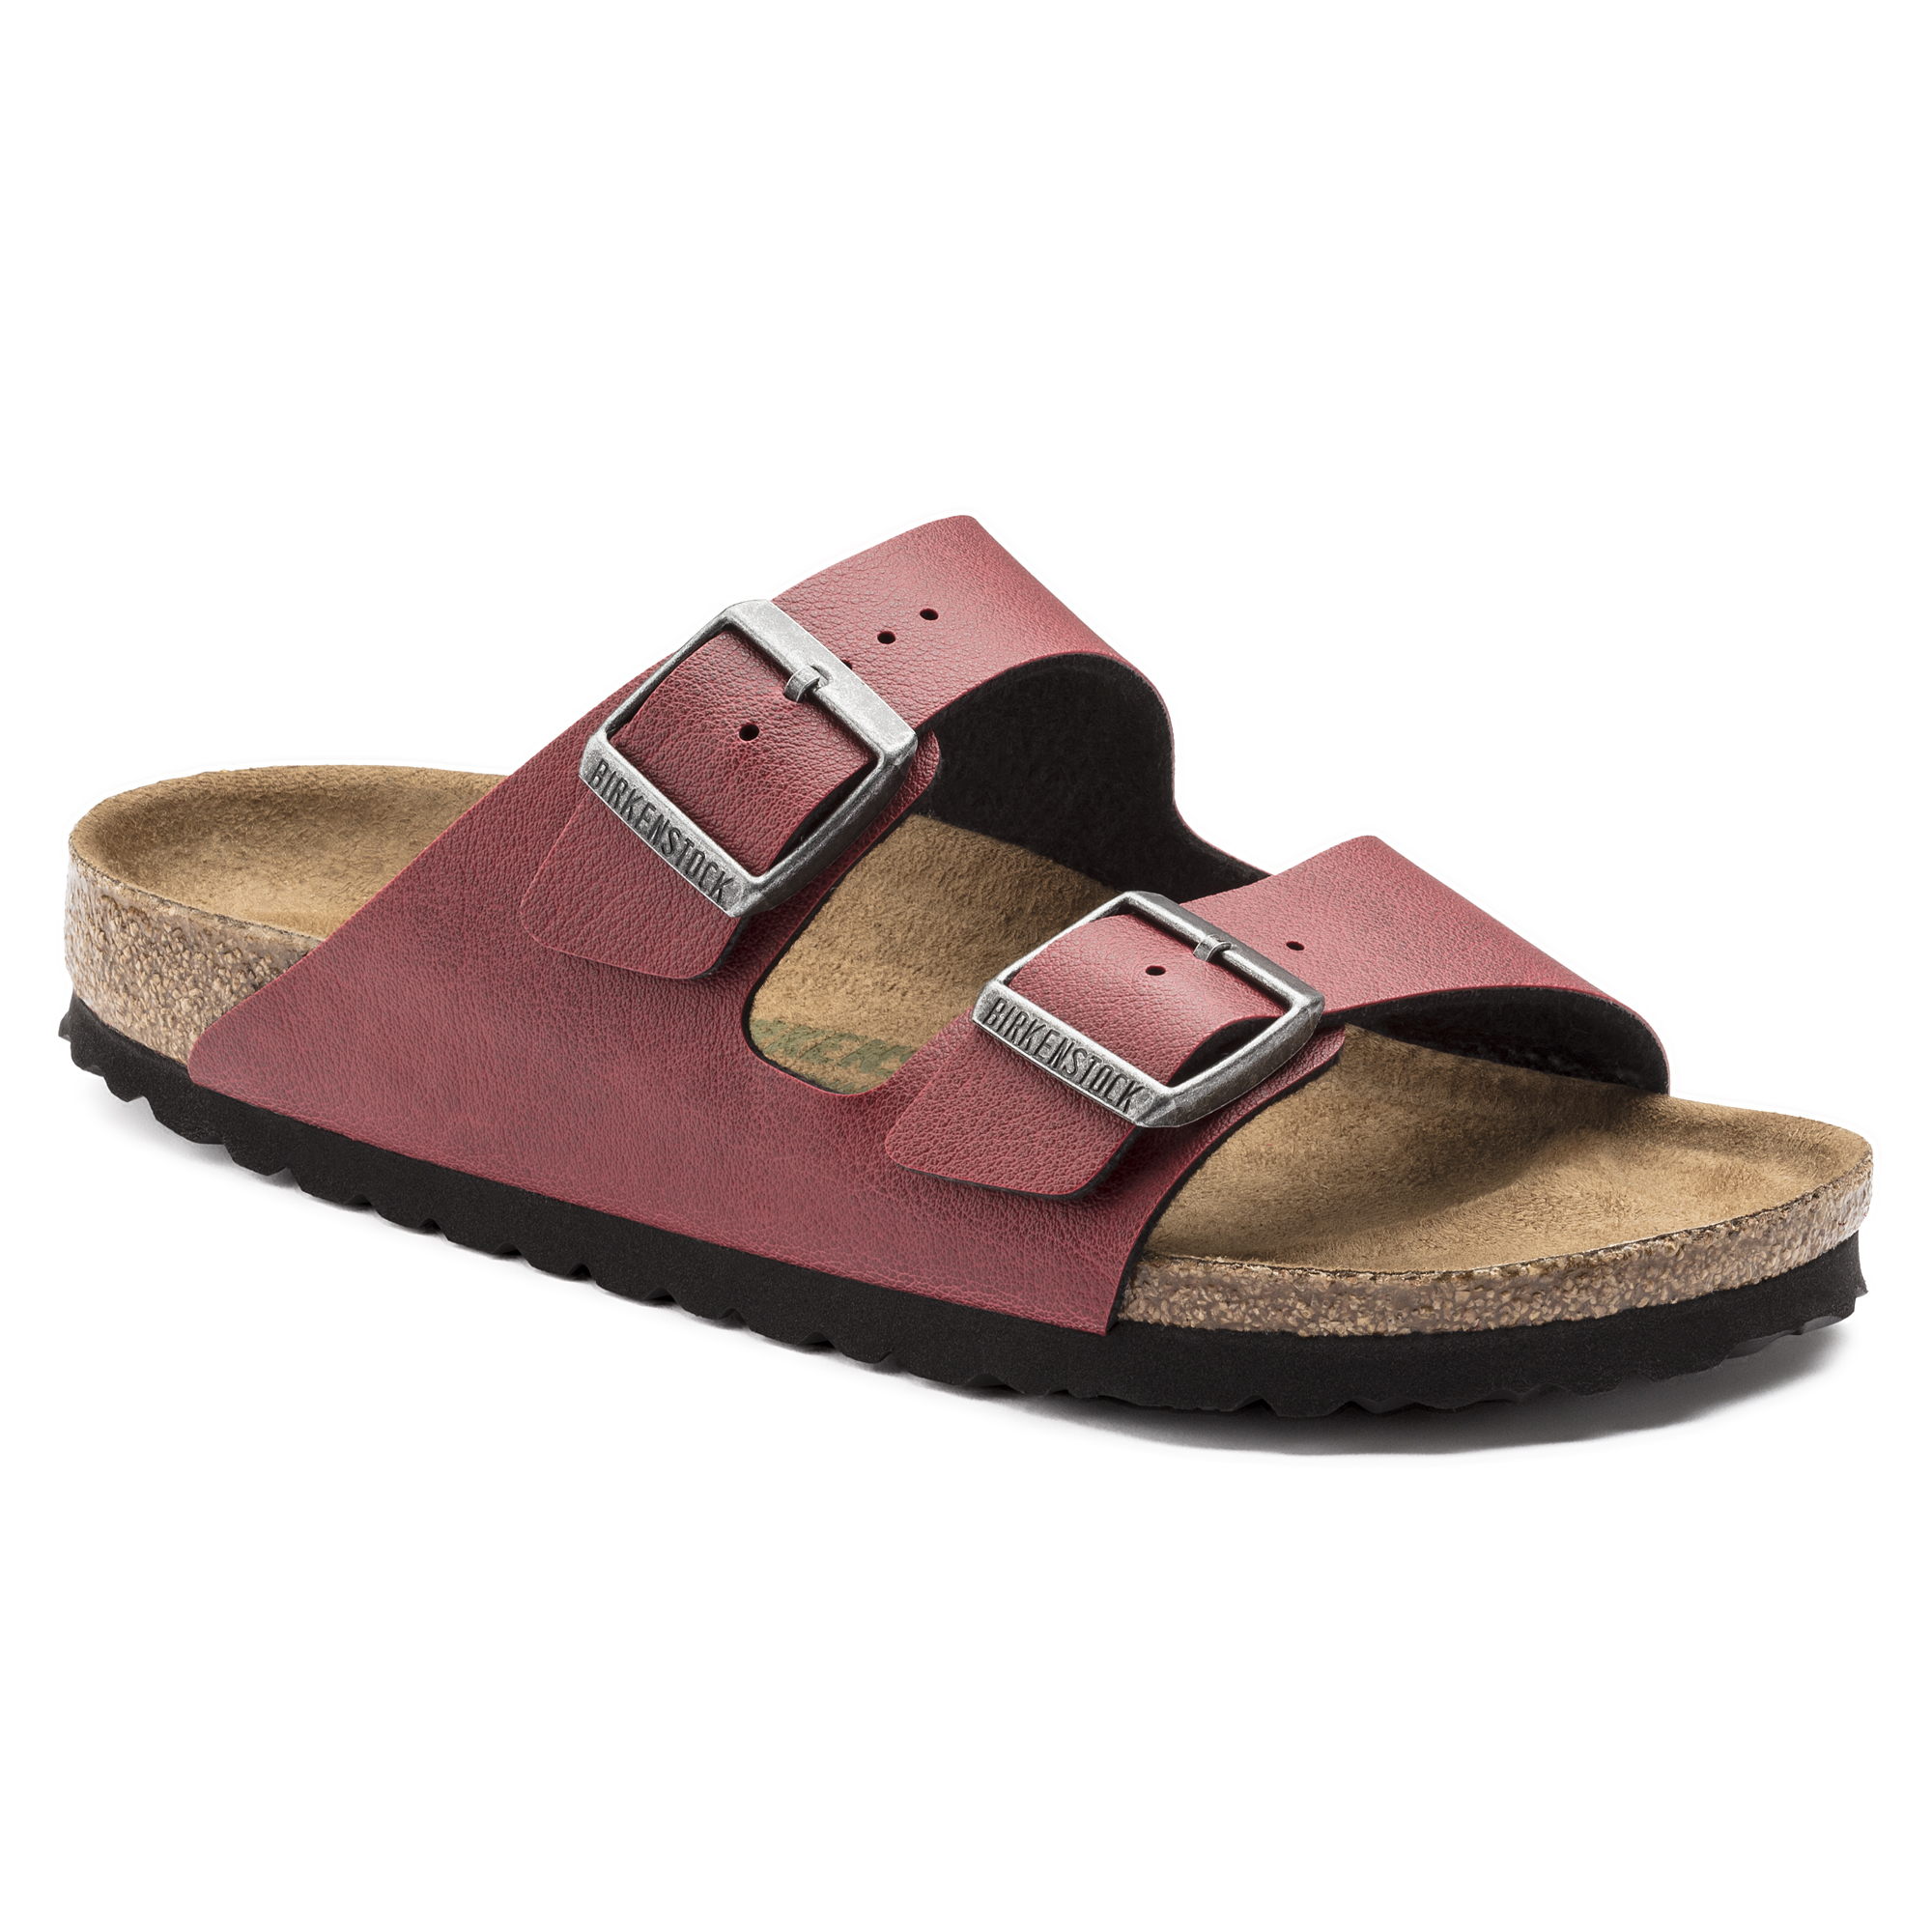 Arizona | shop online at BIRKENSTOCK